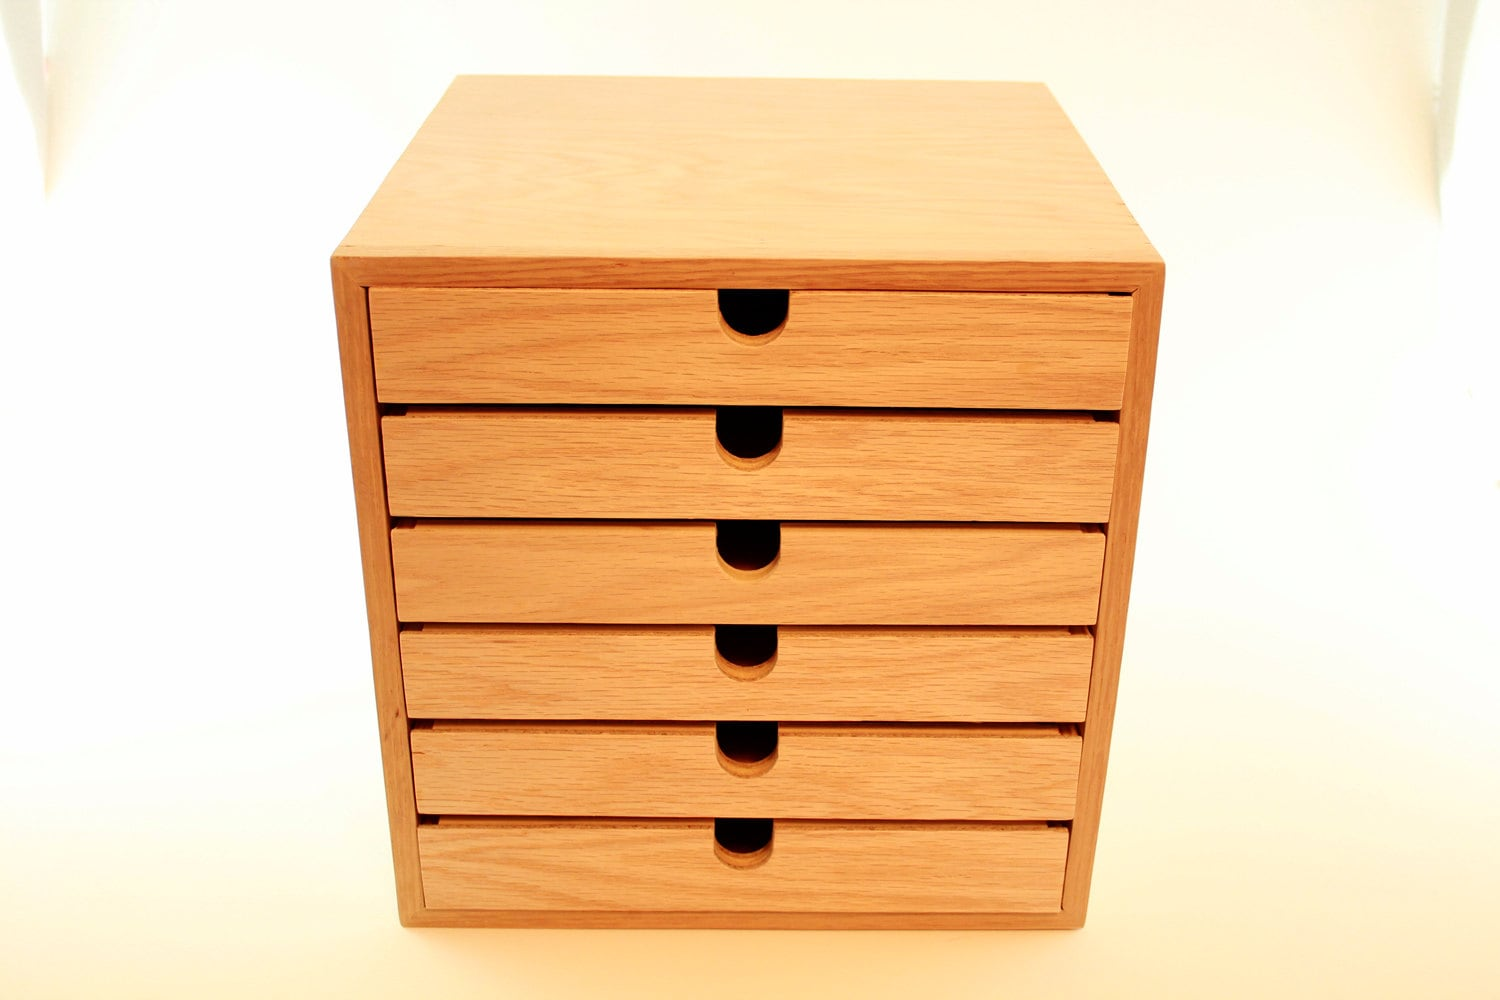 Chest Of Drawers Handmade 6 Drawer Wood Chest Knitting Storage